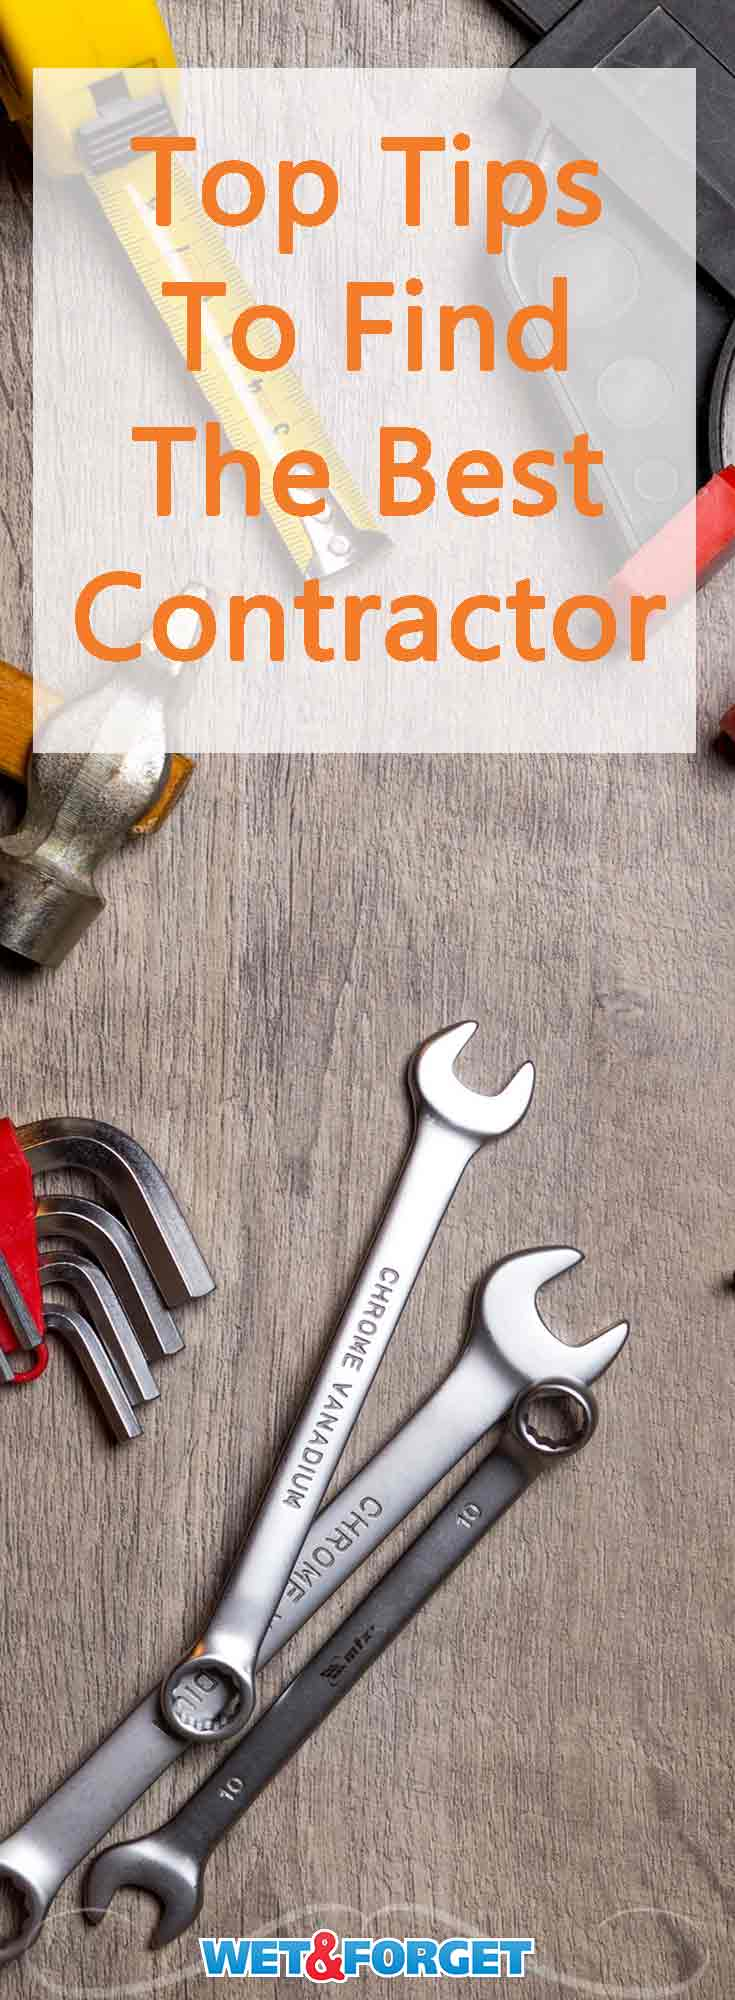 Finding the right contractor for your next home improvement project isn't always the easiest. These top tips will help you find the best contractor for your home.